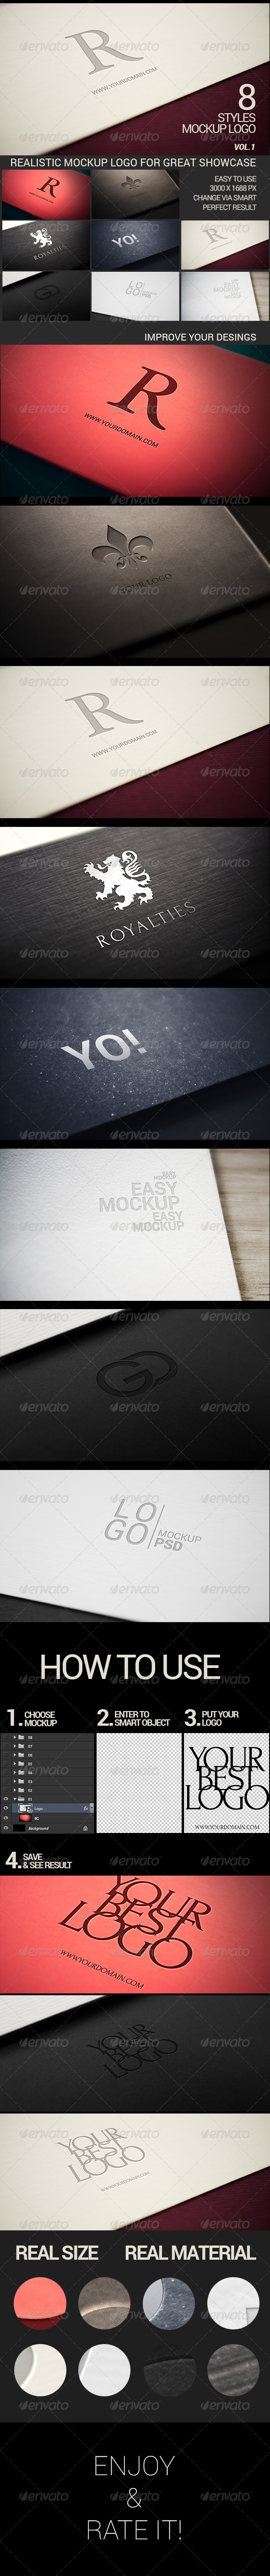 Photorealistic Modern Logo Mock-Up Pack Vol.1 - Logo Product Mock-Ups